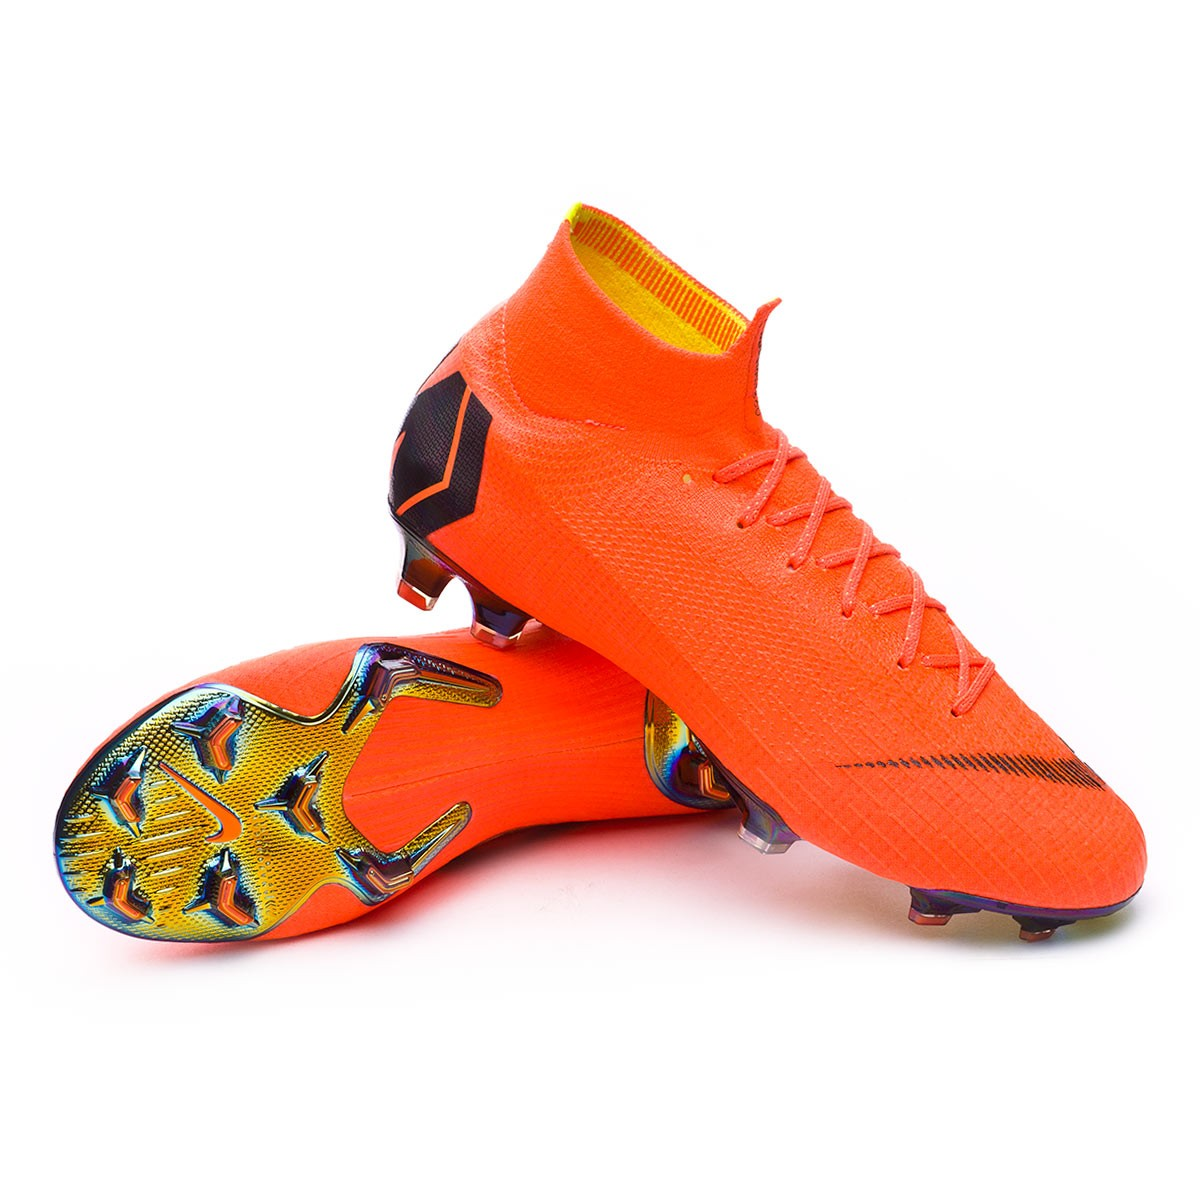 be16cf9363b Football Boots Nike Mercurial Superfly VI Elite FG Total orange ...